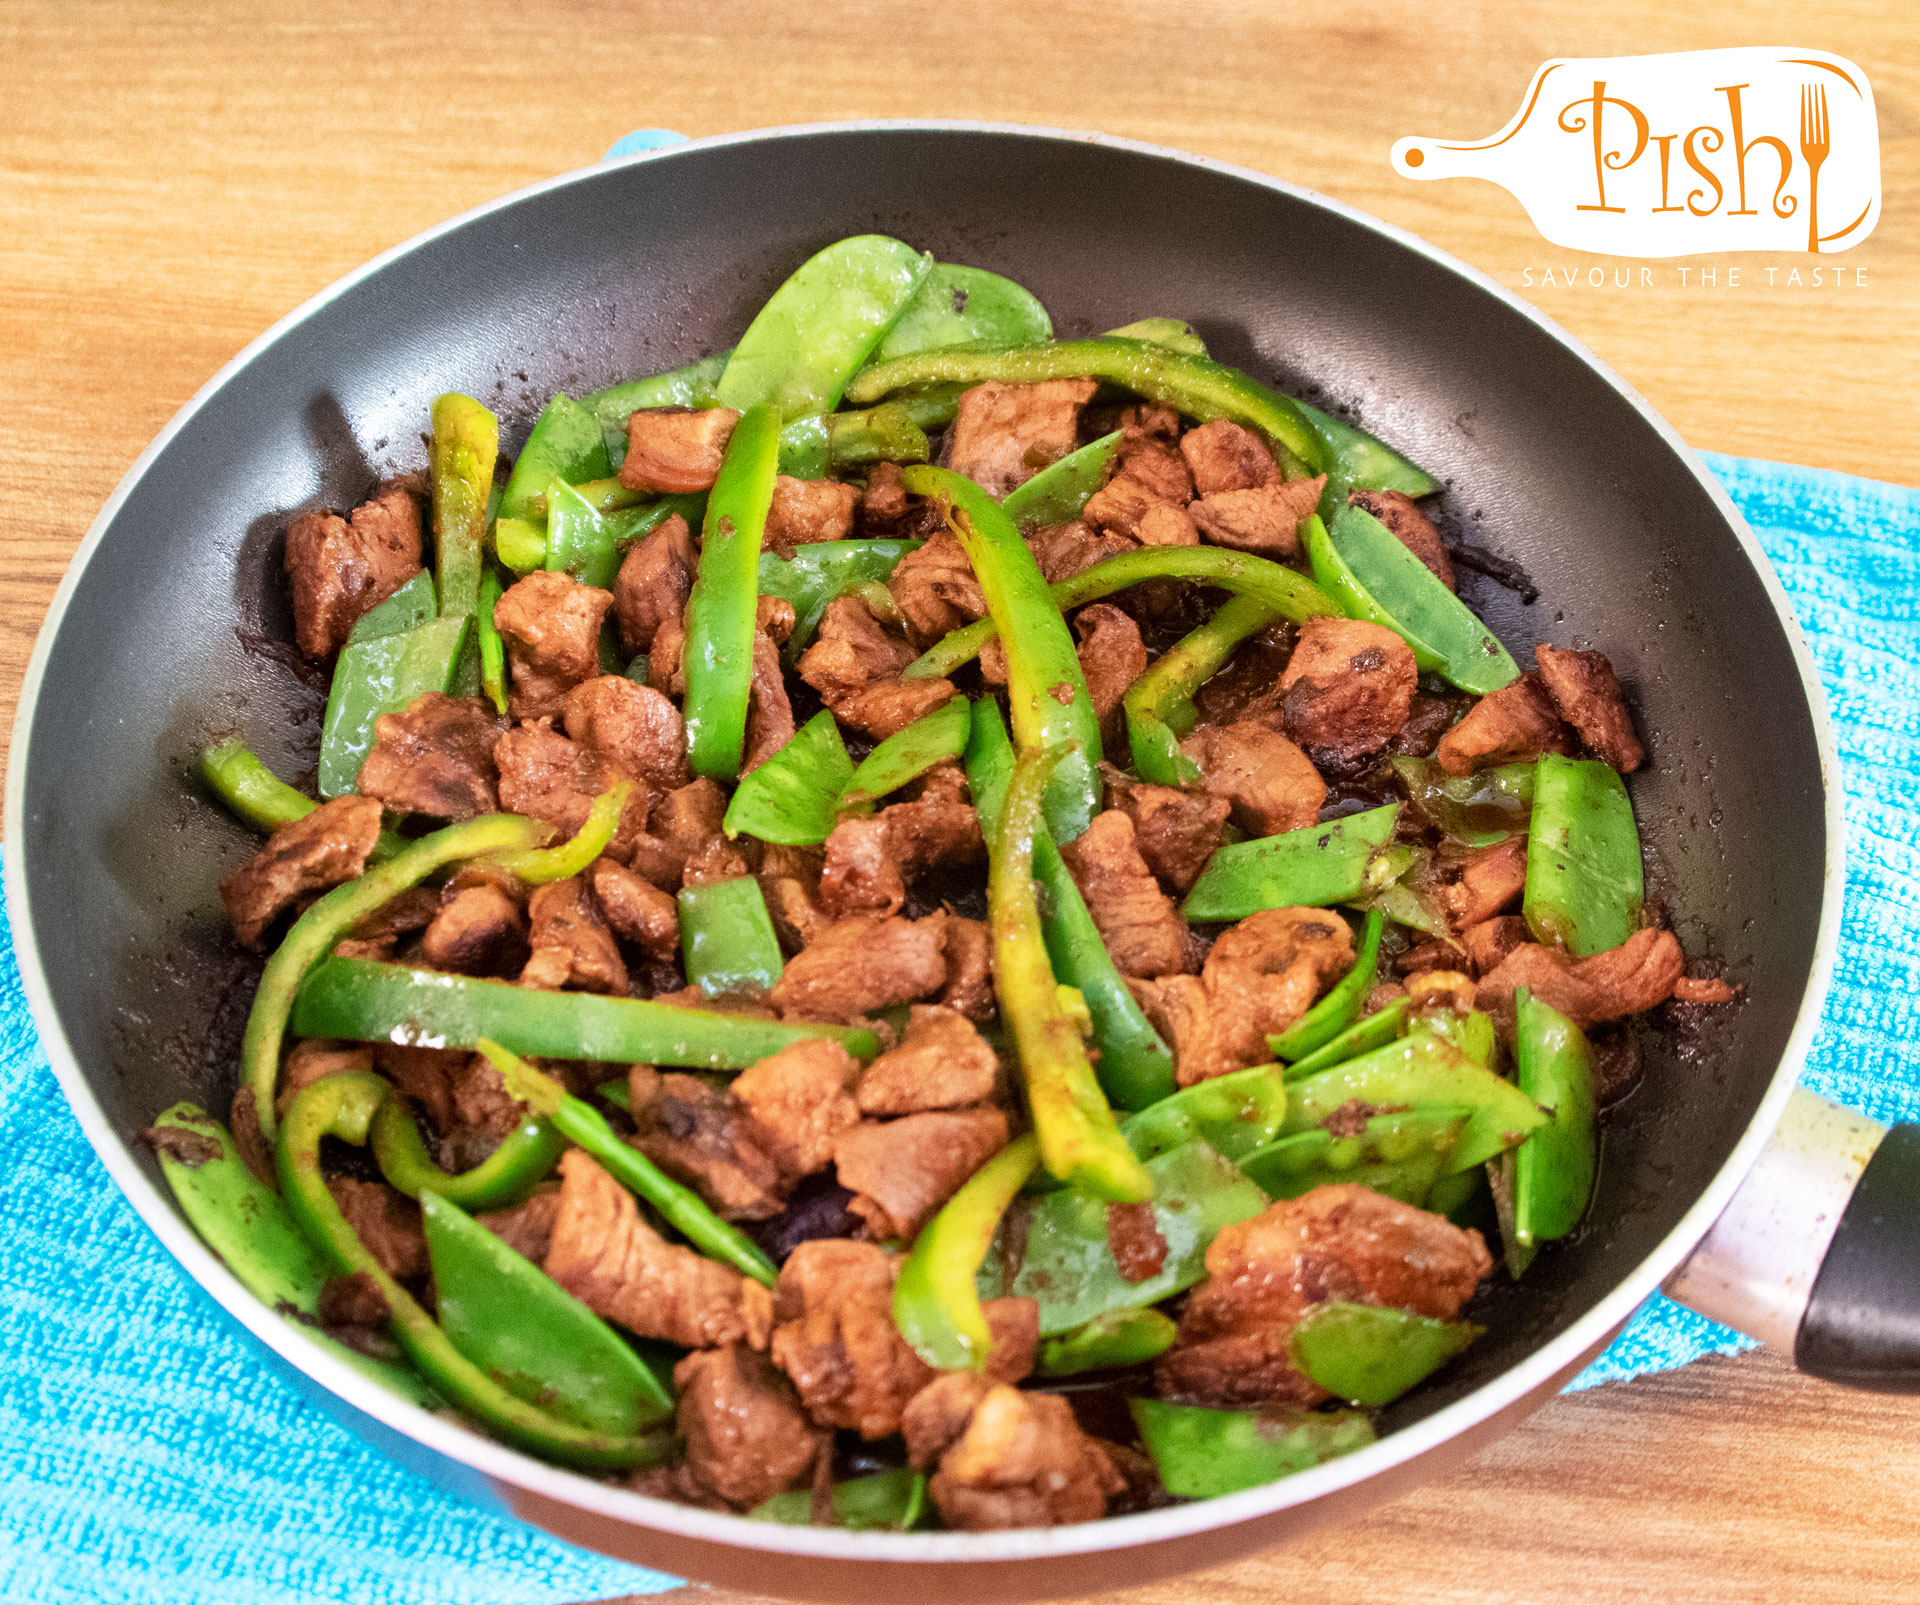 Veg and Beef Stirfry